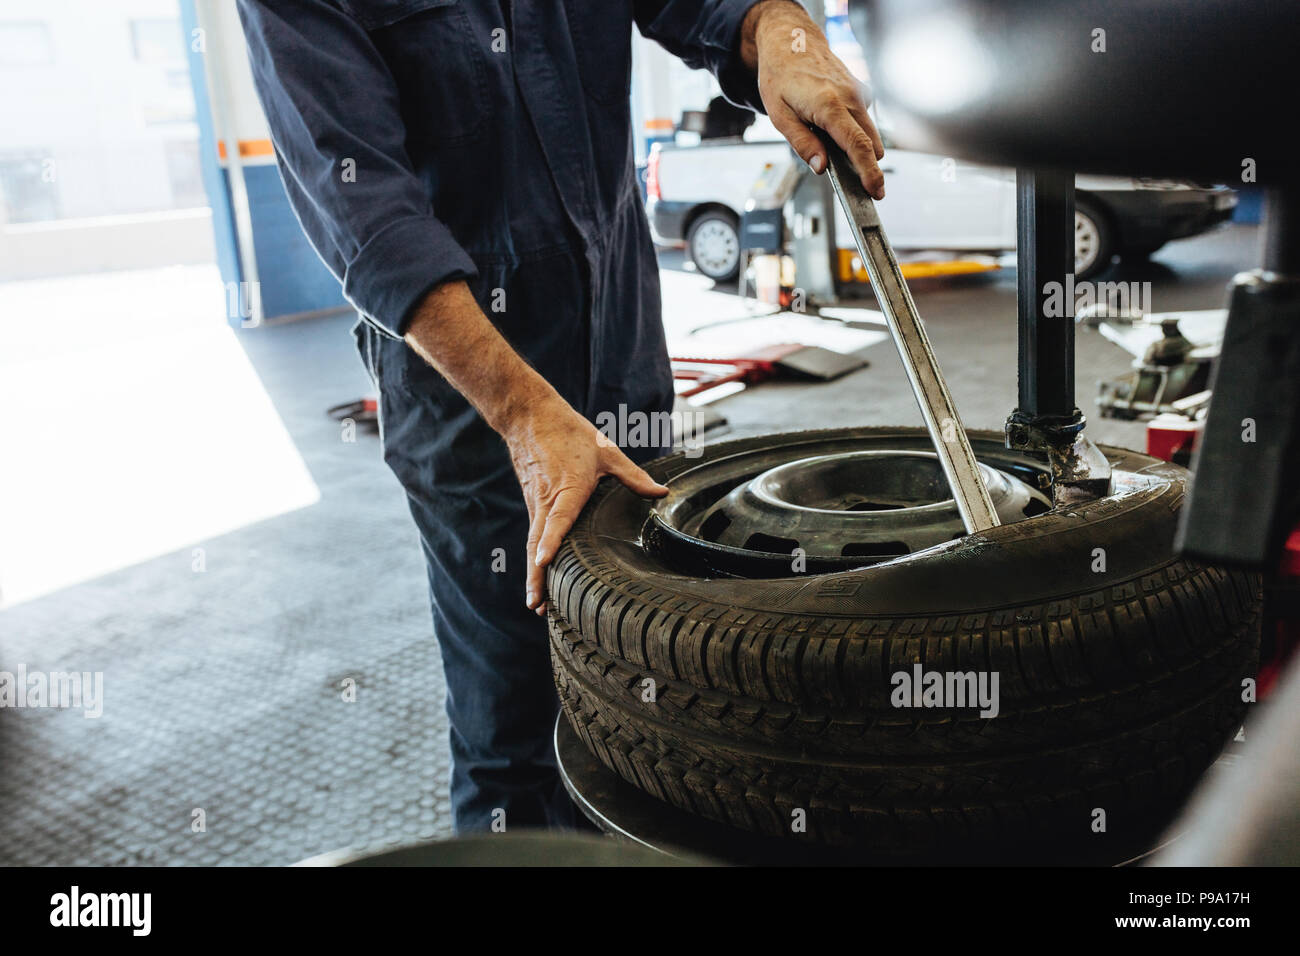 Cropped shot of mechanic removing the tire from rim on machine. Hands of technician taking out the automobile wheel from rim. - Stock Image